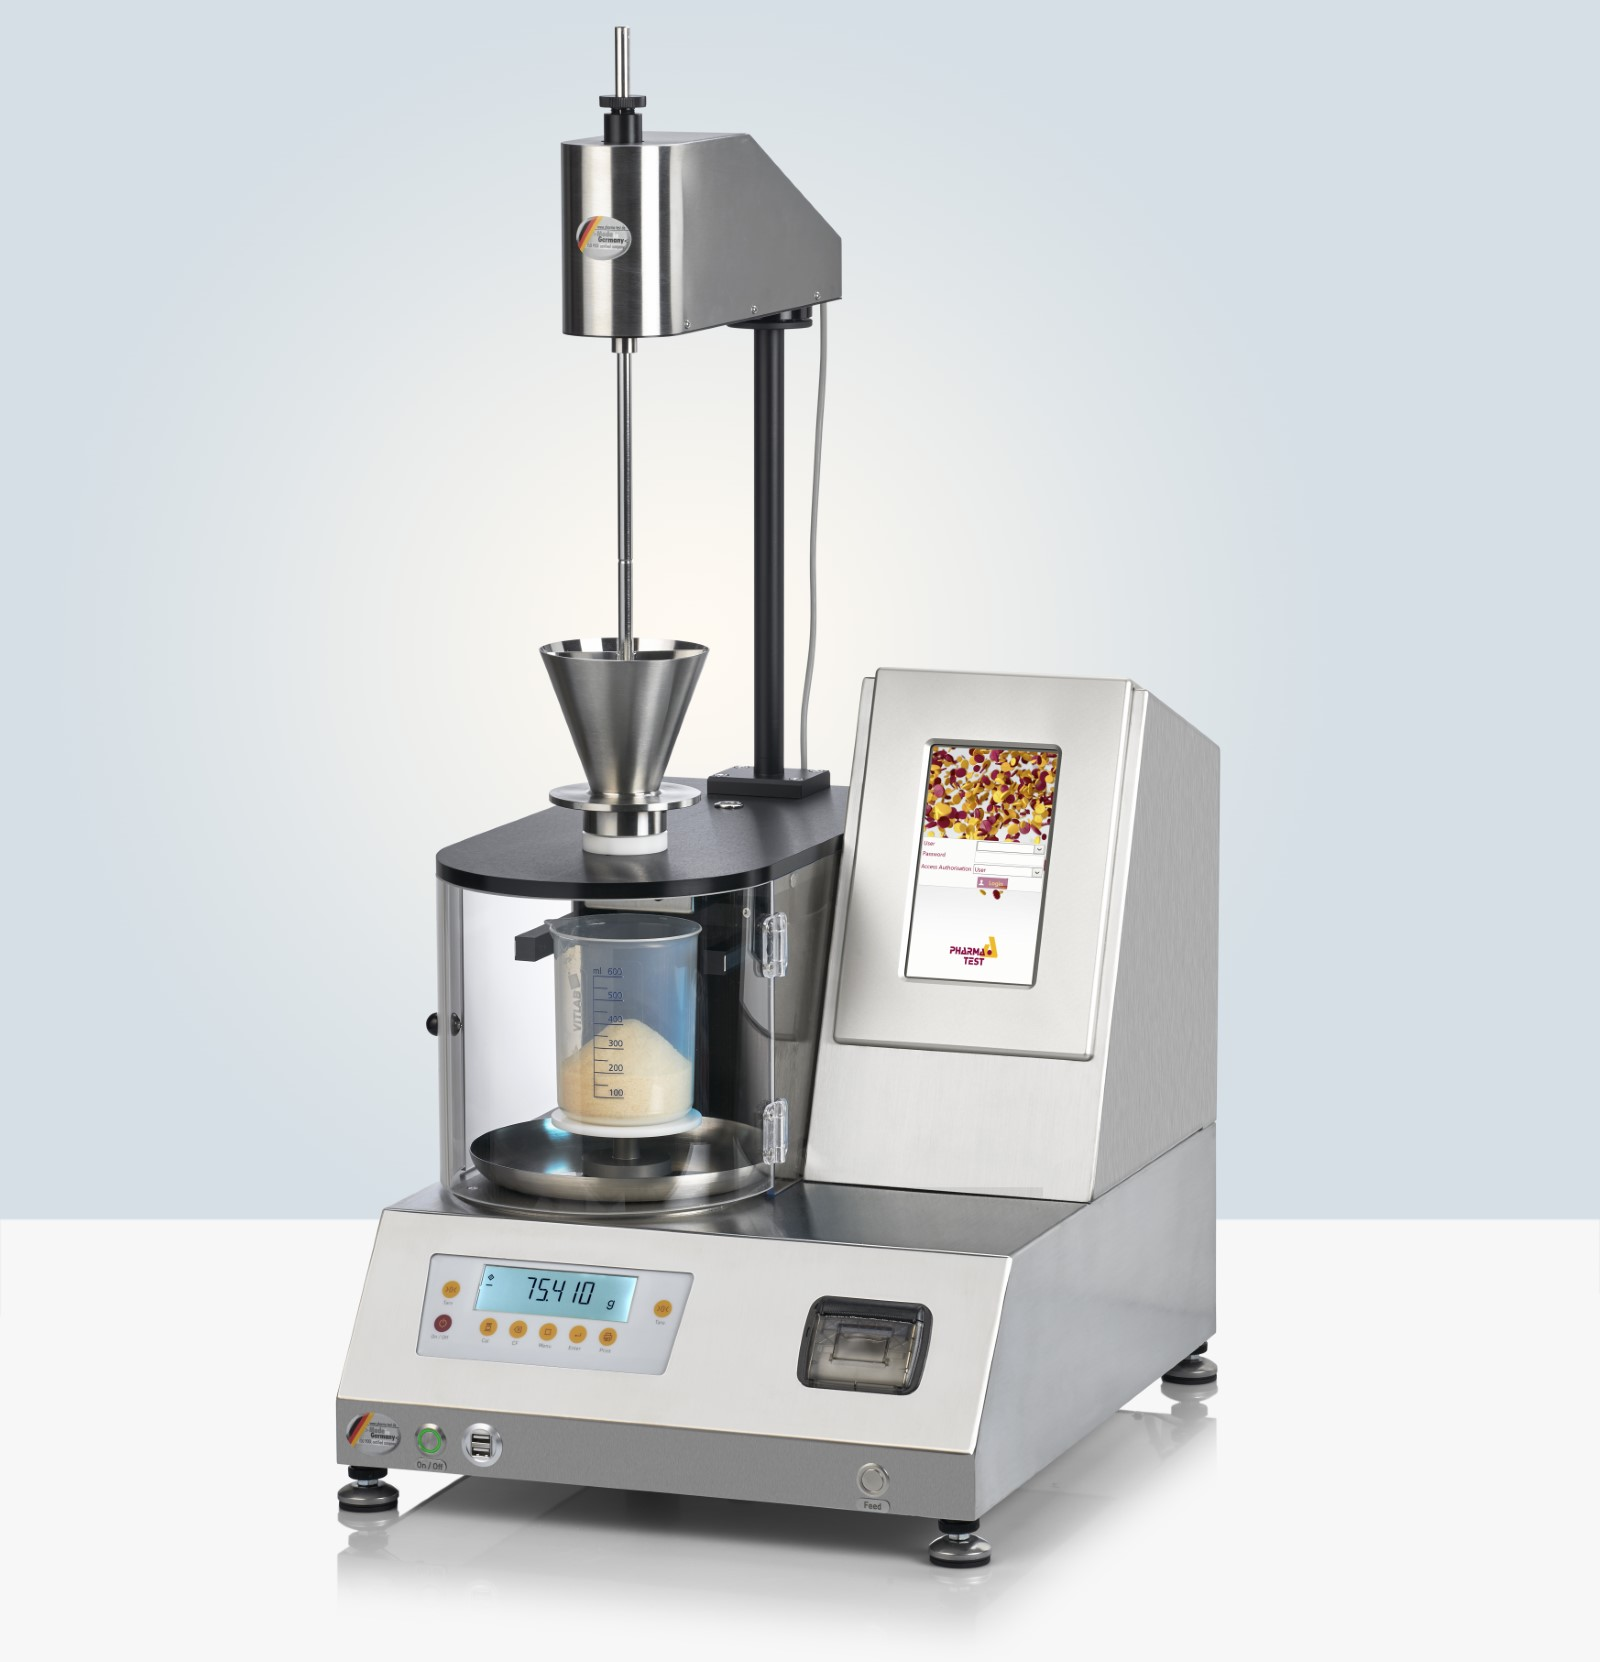 The PTG-S5 is equipped with a clear view dust hood, made from anti-static material, to protect the user from most of the dust during the powder analysis. This hood can easily be opened or removed completely for cleaning. The instrument is operated using a large color touch screen.